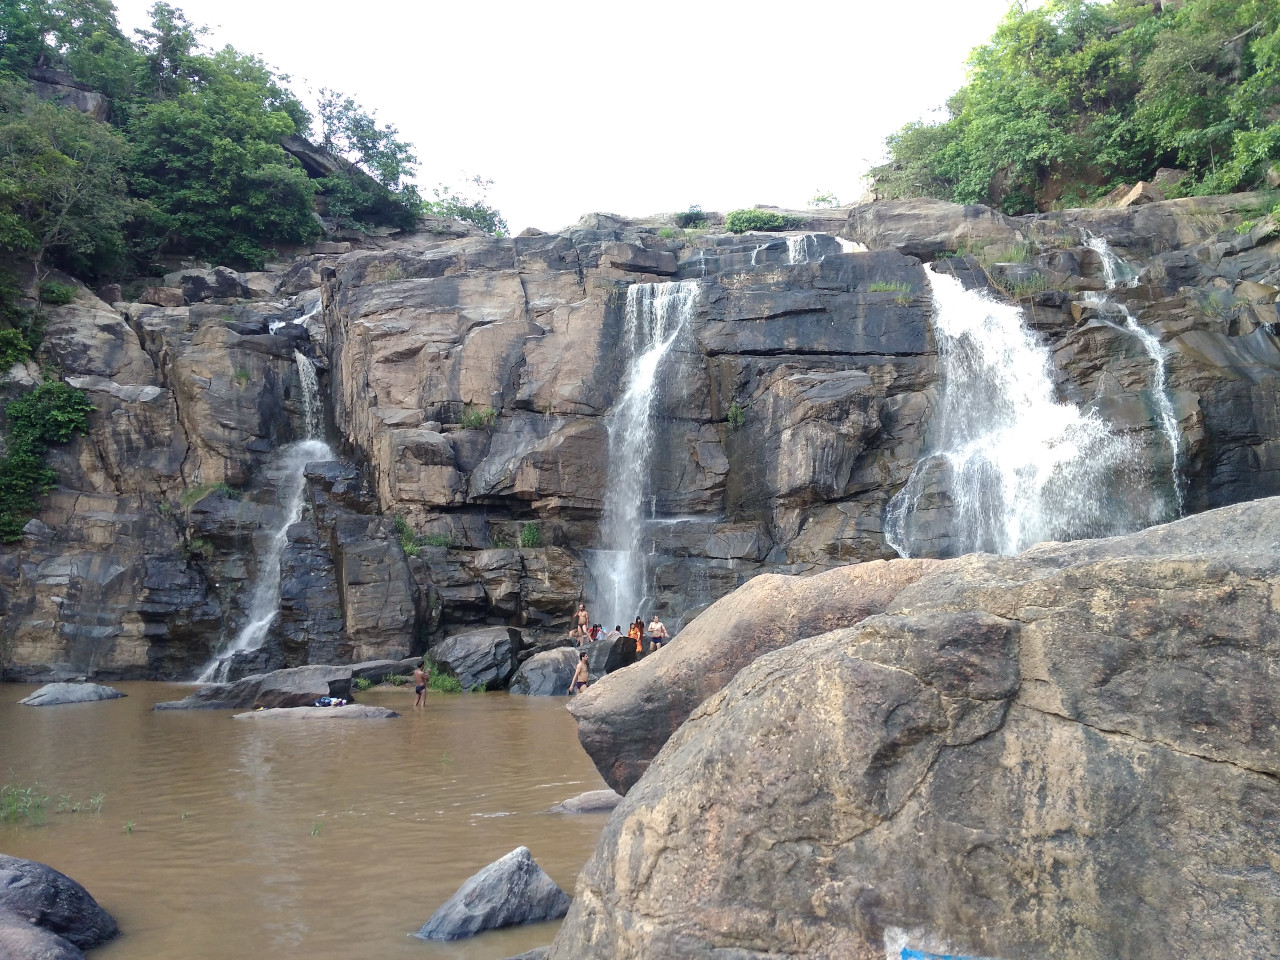 Hudru Waterfalls. Beautiful India waterfalls to see on your holiday in India.